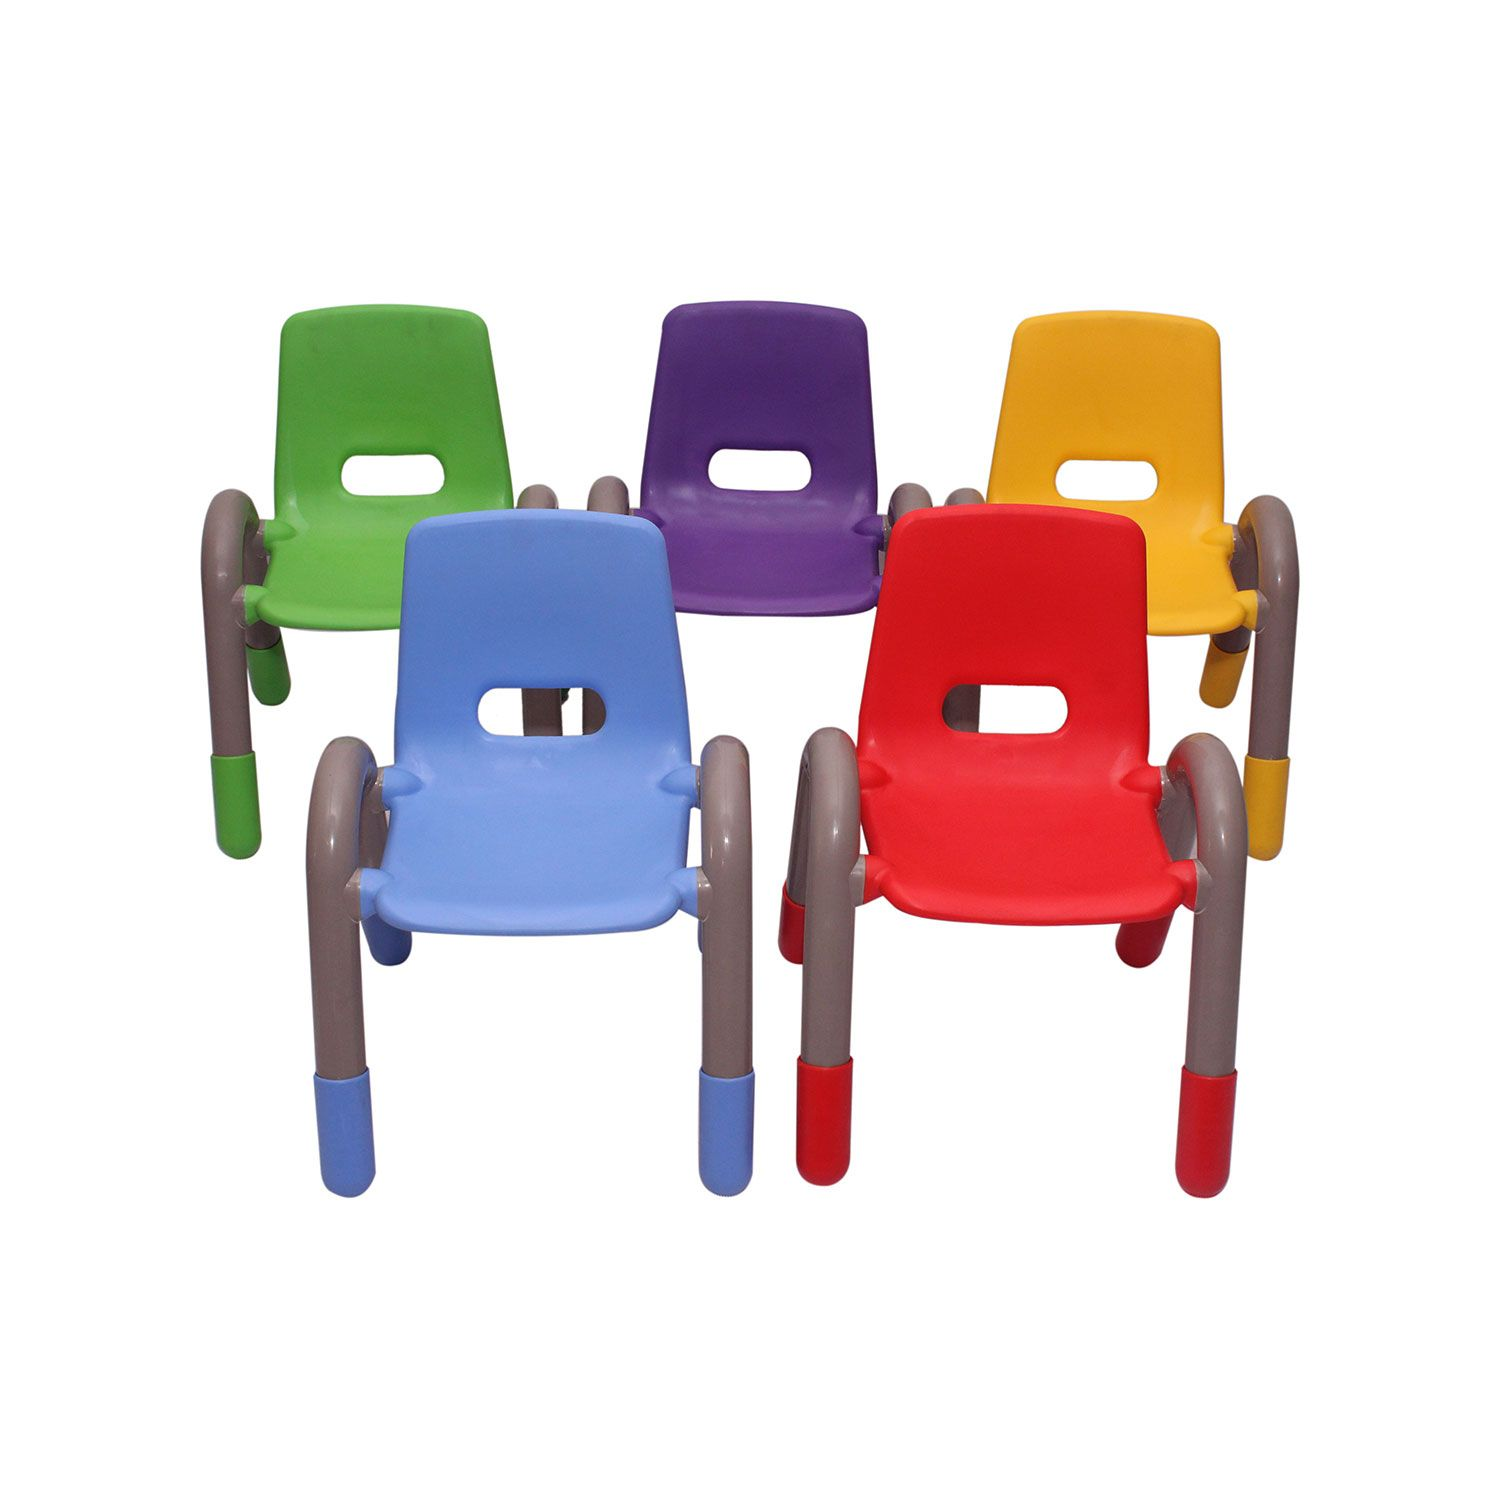 plastic kid chairs eastlake rocking chair the volver engineering kids five pieces furniture manufacturer study tables suppliers vjinterior